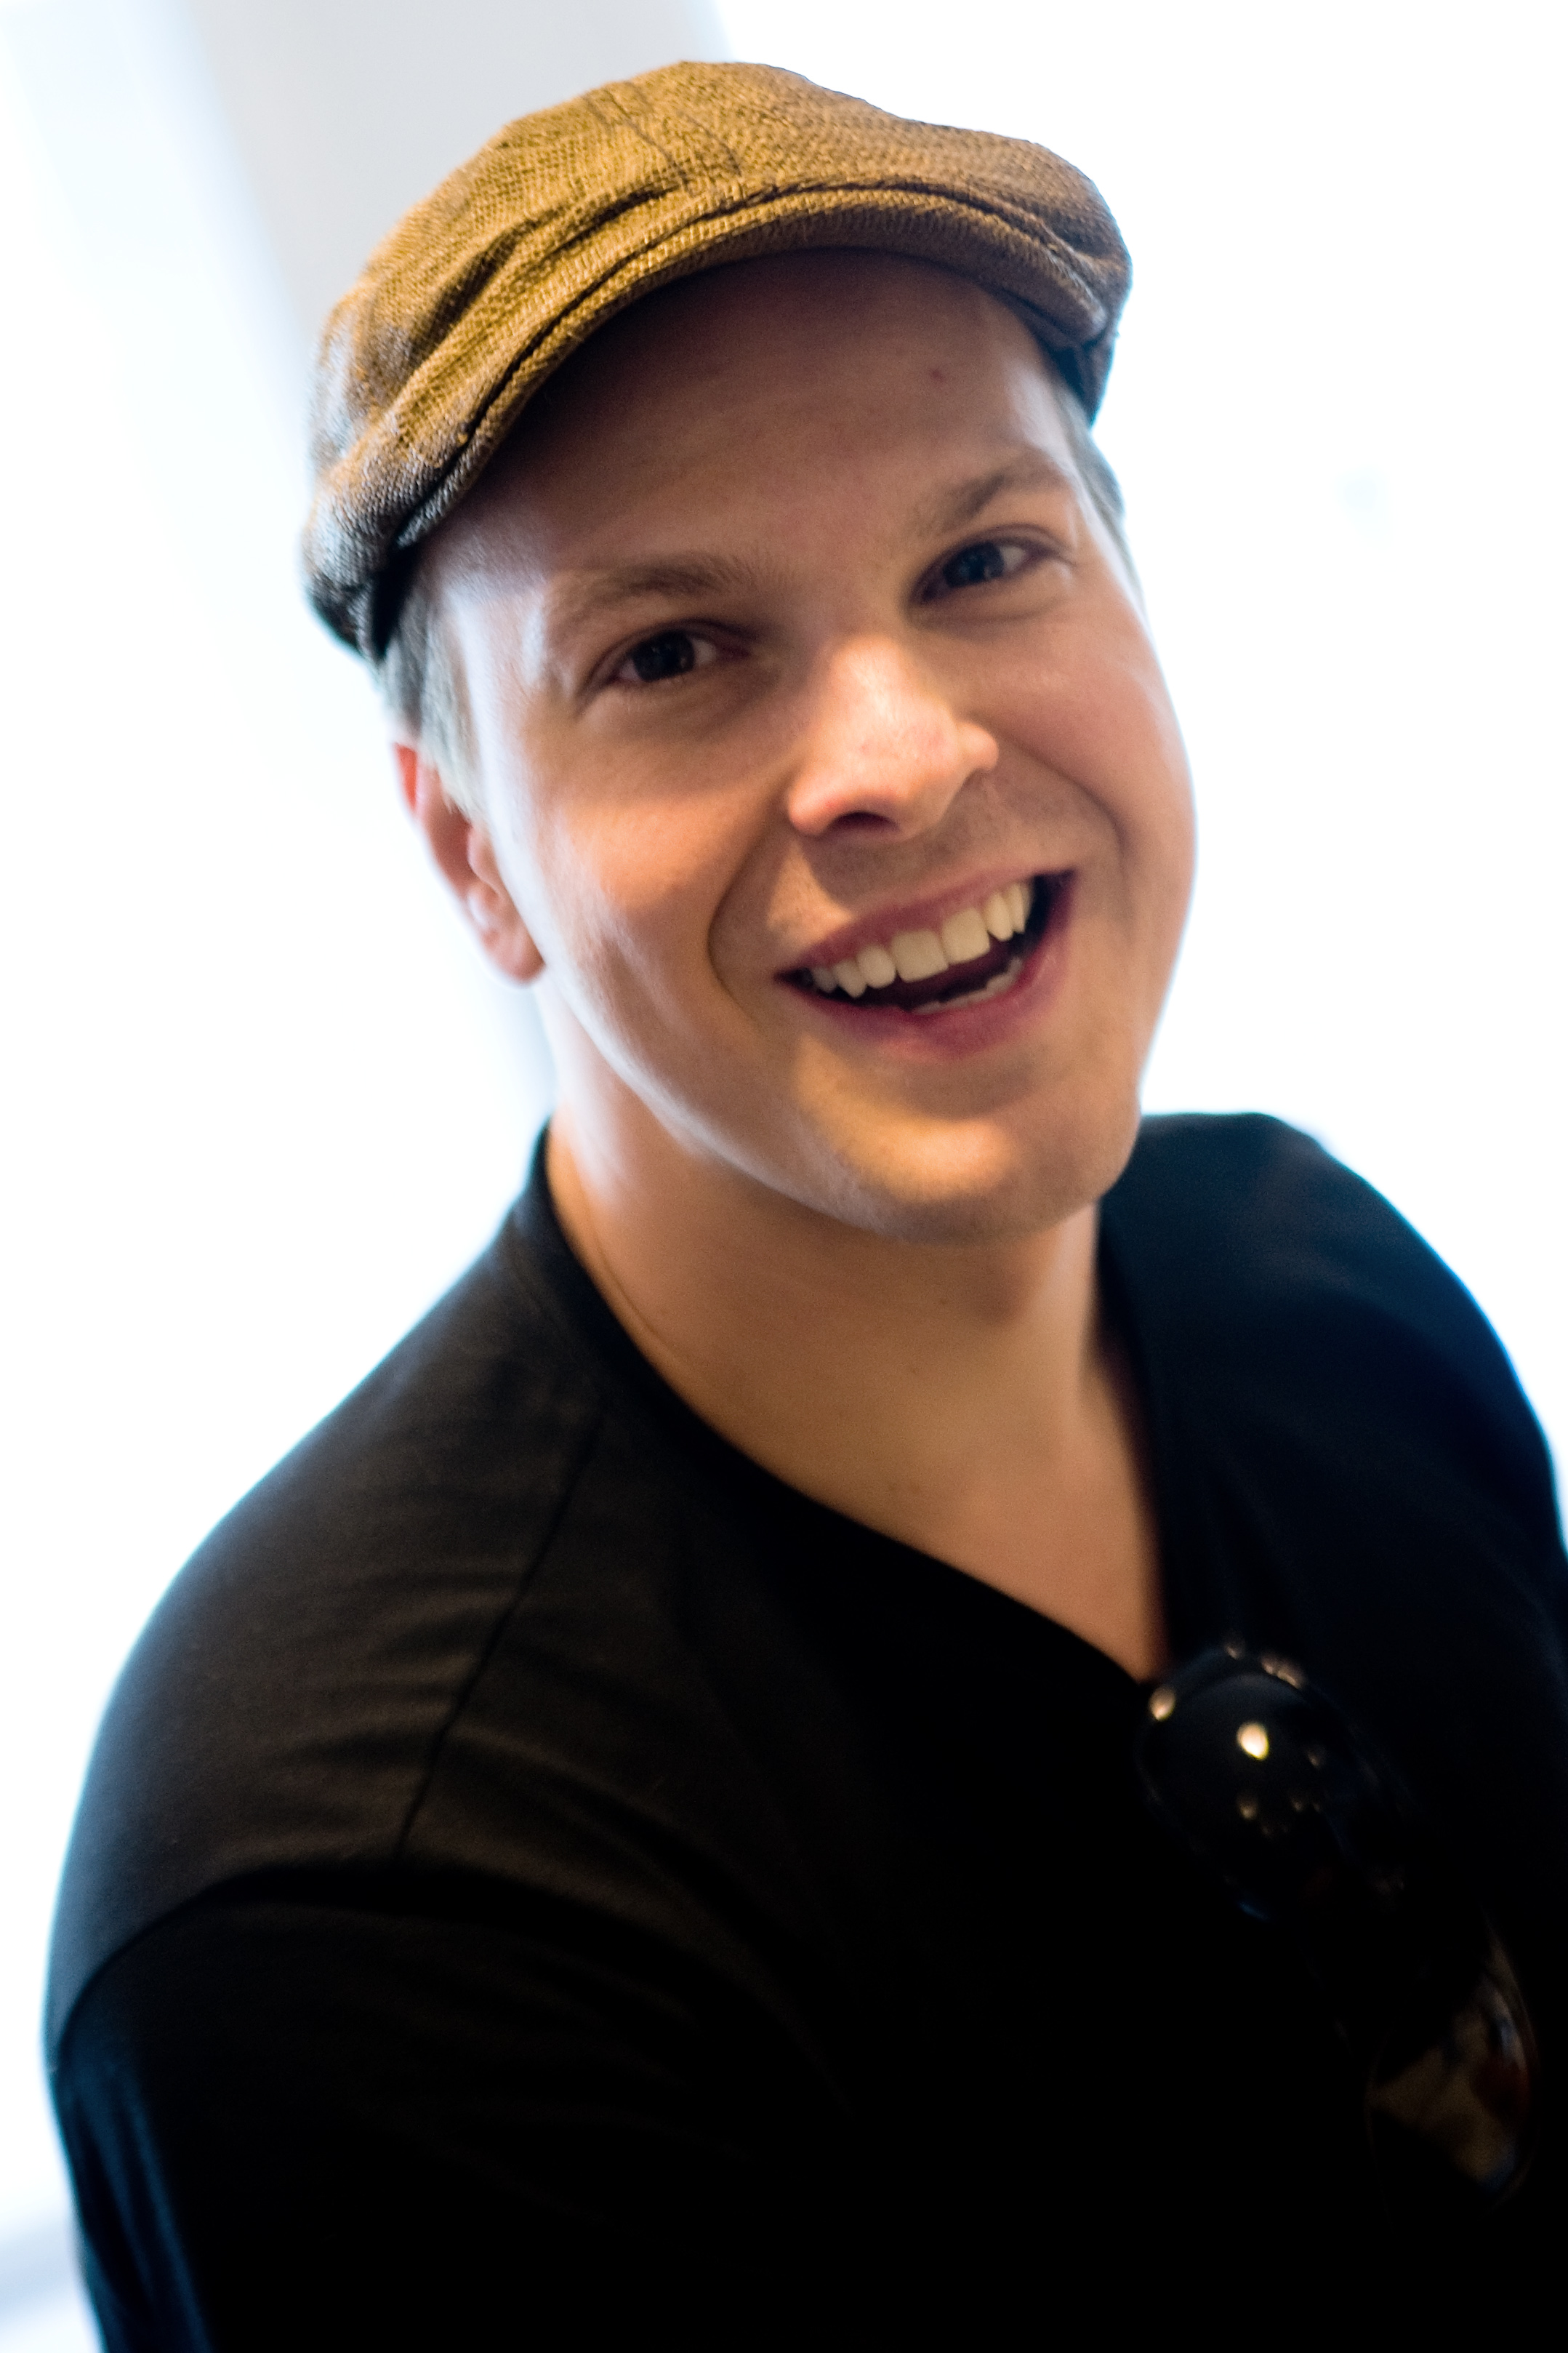 File:GAVIN DEGRAW june2009.jpg - Wikipedia, the free encyclopedia